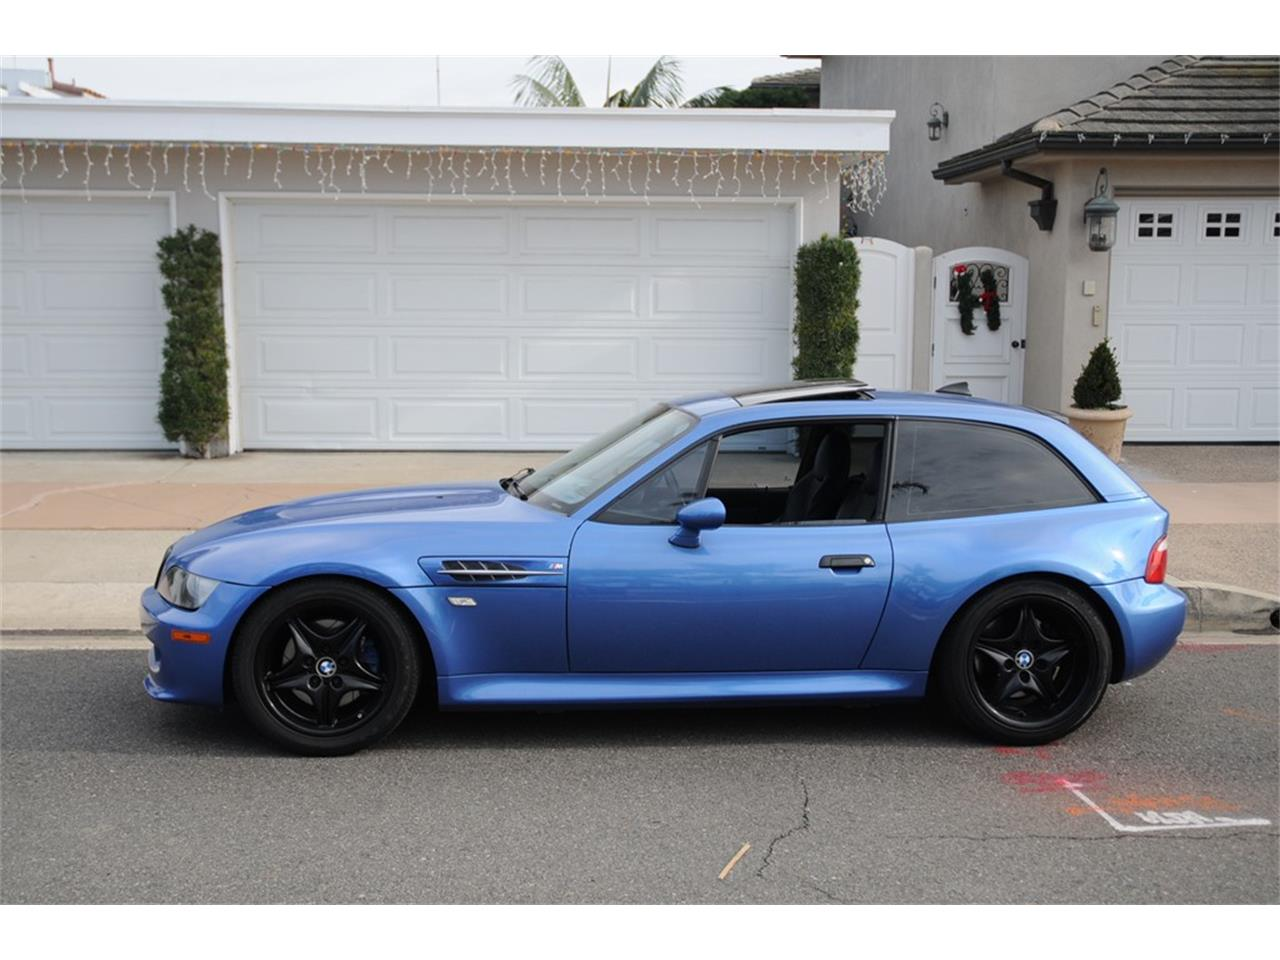 Large Picture of 2000 BMW M Coupe located in Costa Mesa California - $17,990.00 - P65V